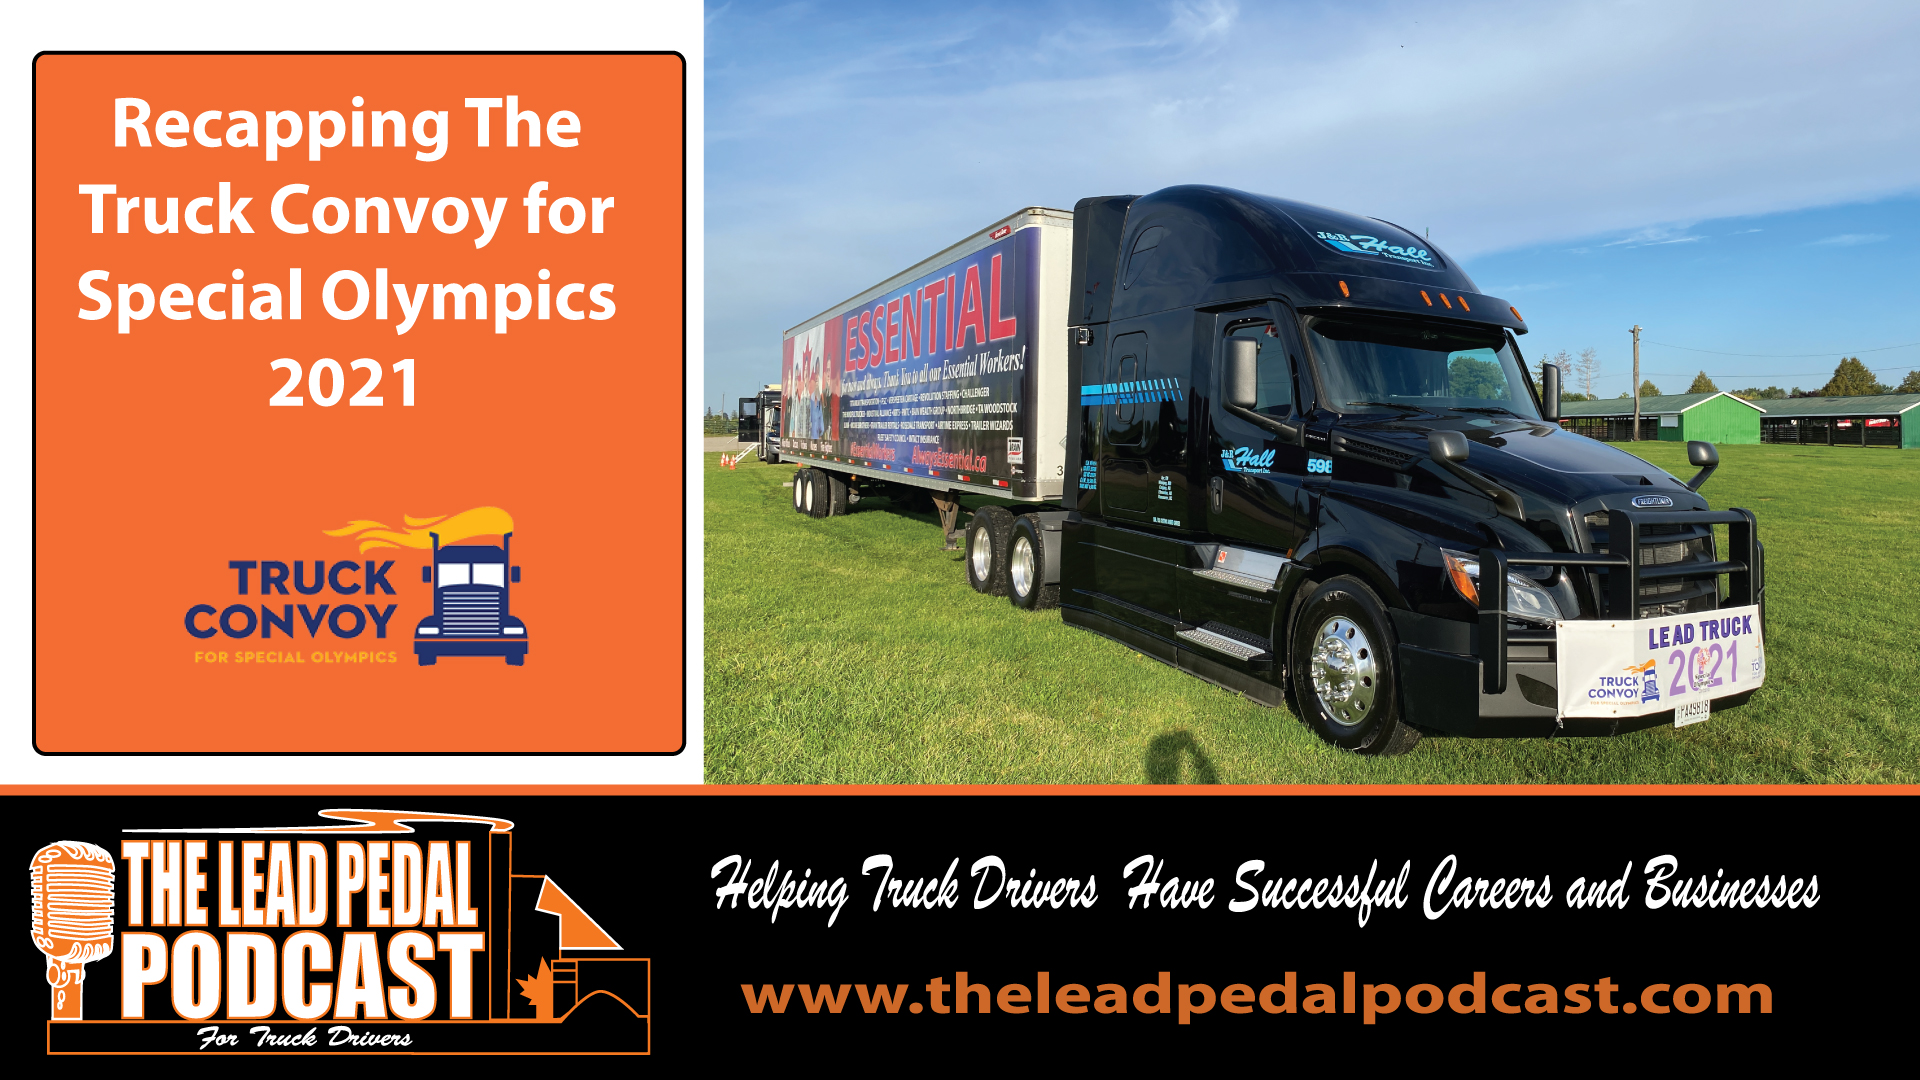 LP696 Recap of the Truck Convoy for Special Olympics 2021